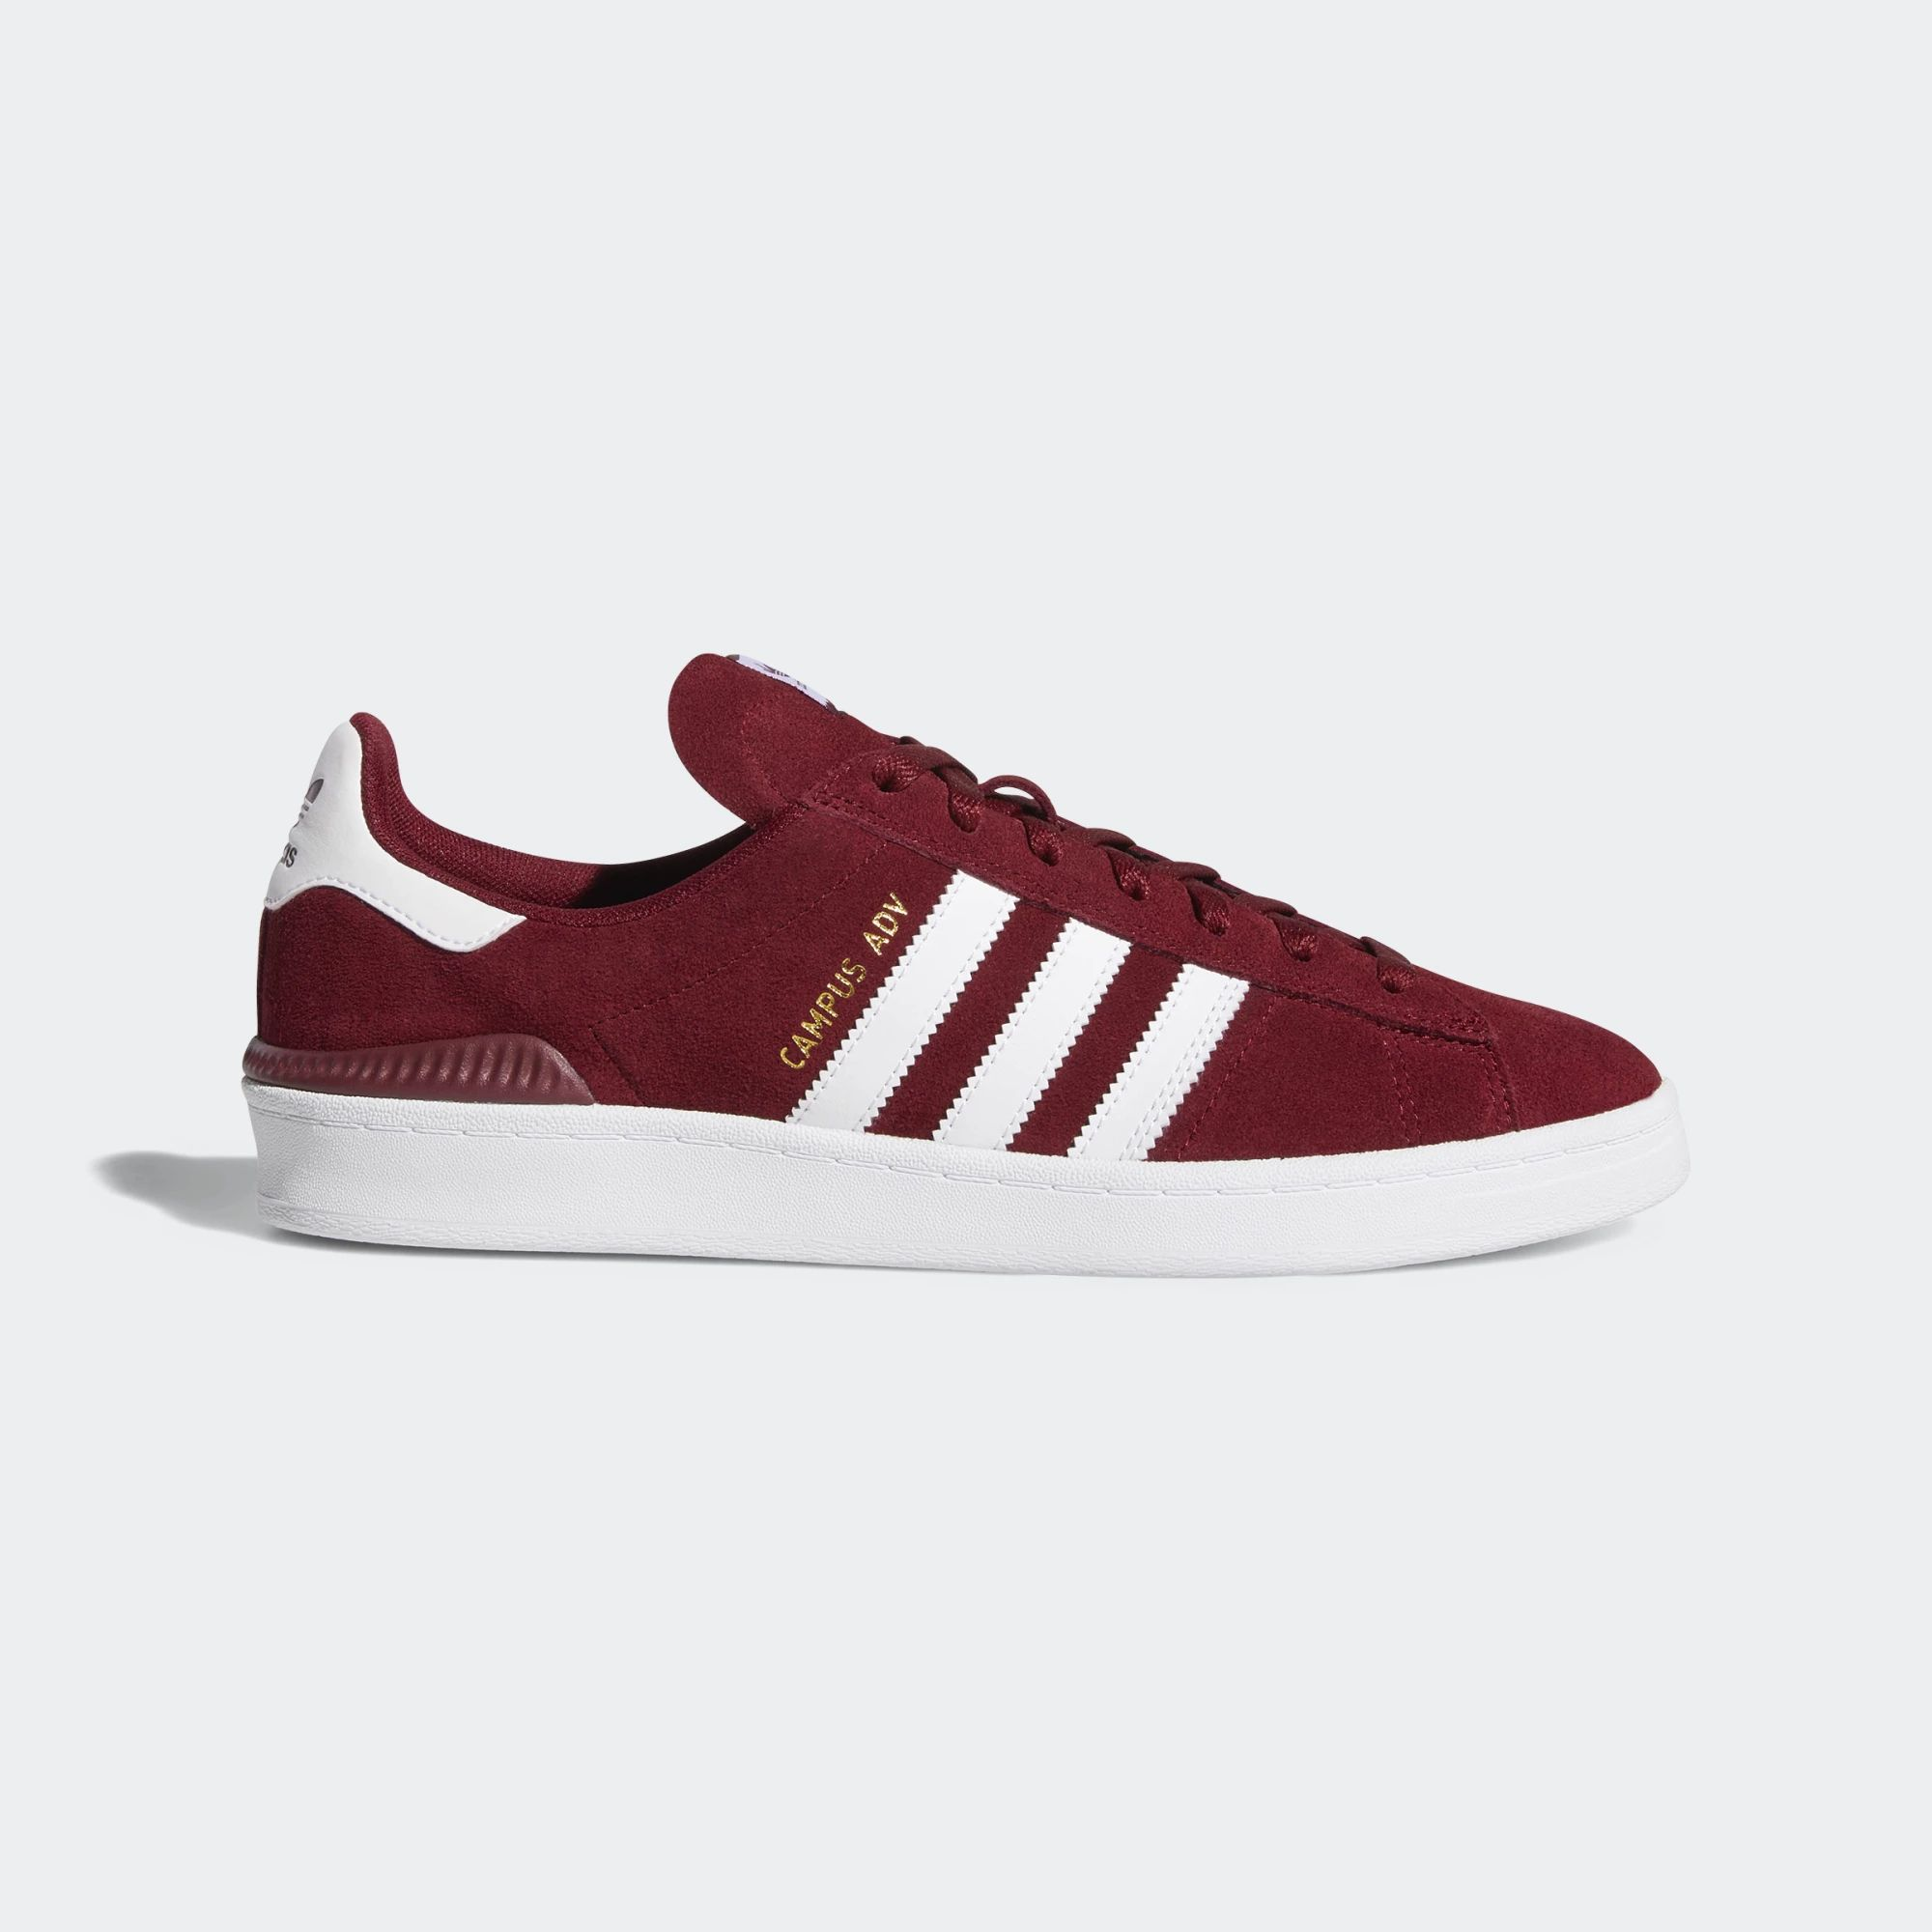 Adidas Campus ADV Shoes - Collegiate Burgundy / Ftwr White / Ftwr White